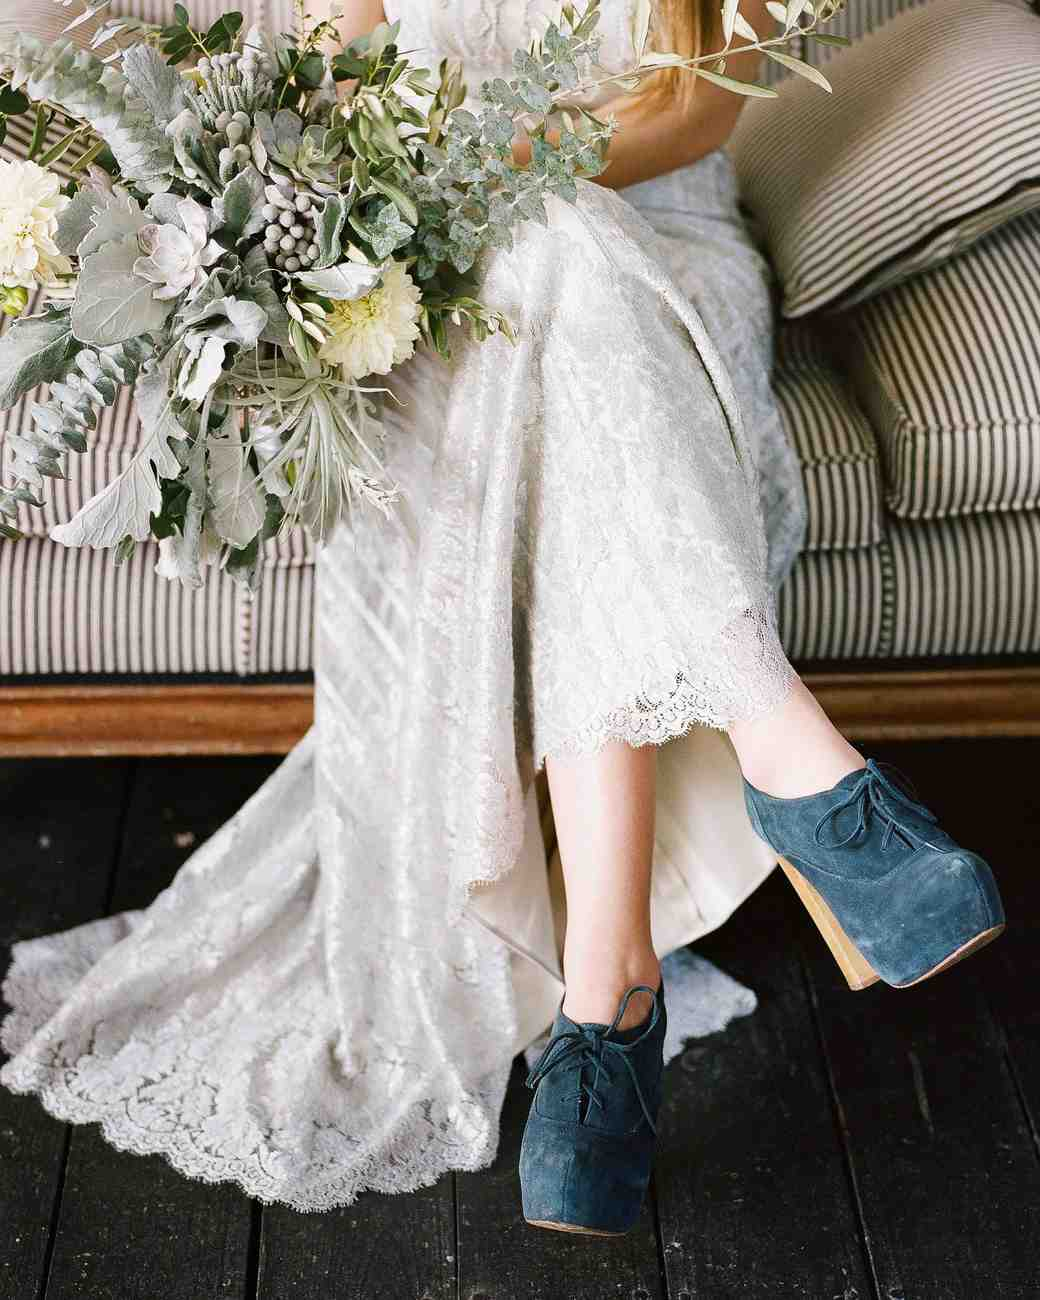 25 Nontraditional Wedding Shoe Ideas From Stylish Brides Martha Stewart Weddings: Wedding Dress With Booties At Websimilar.org